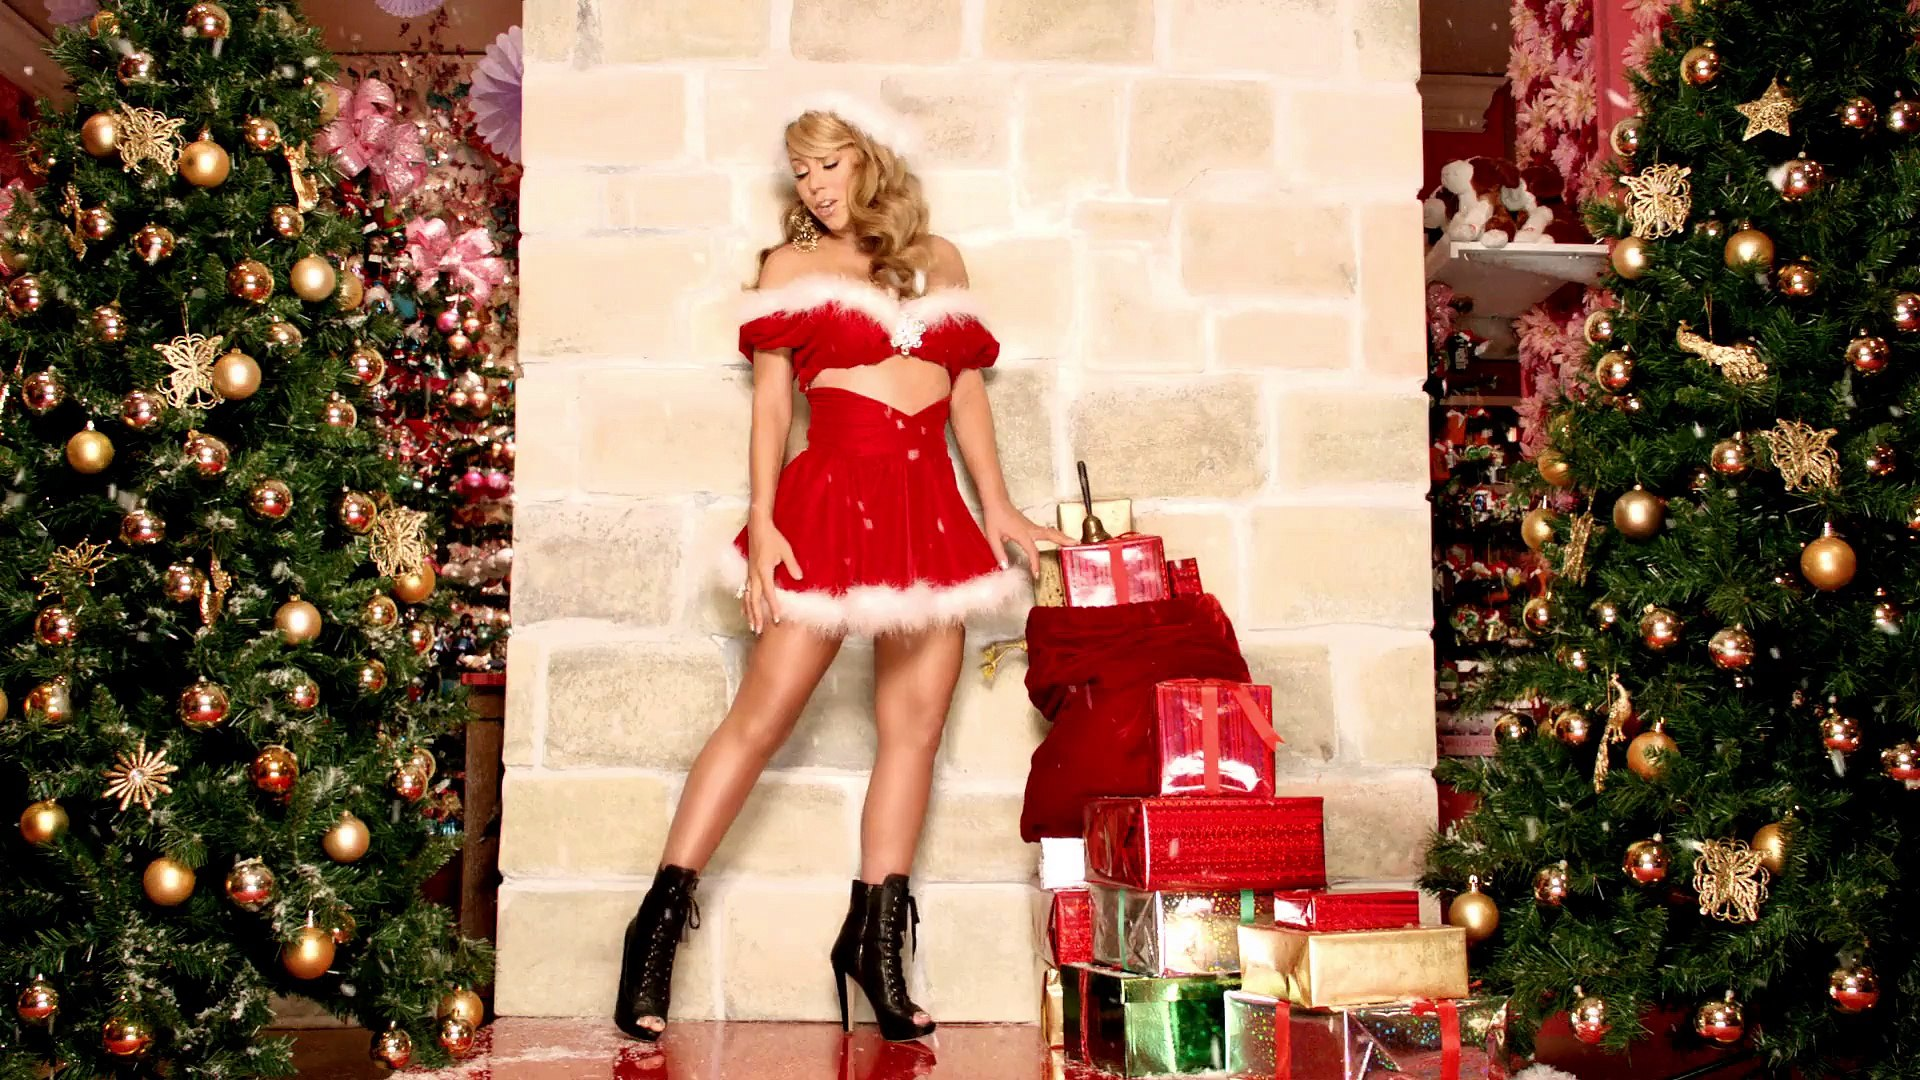 Mariah Carey All I Want For Christmas Is You Lyrics.All I Want For Christmas Is You Superfestive Shazam Version Mariah Carey Justin Bieber Vevo